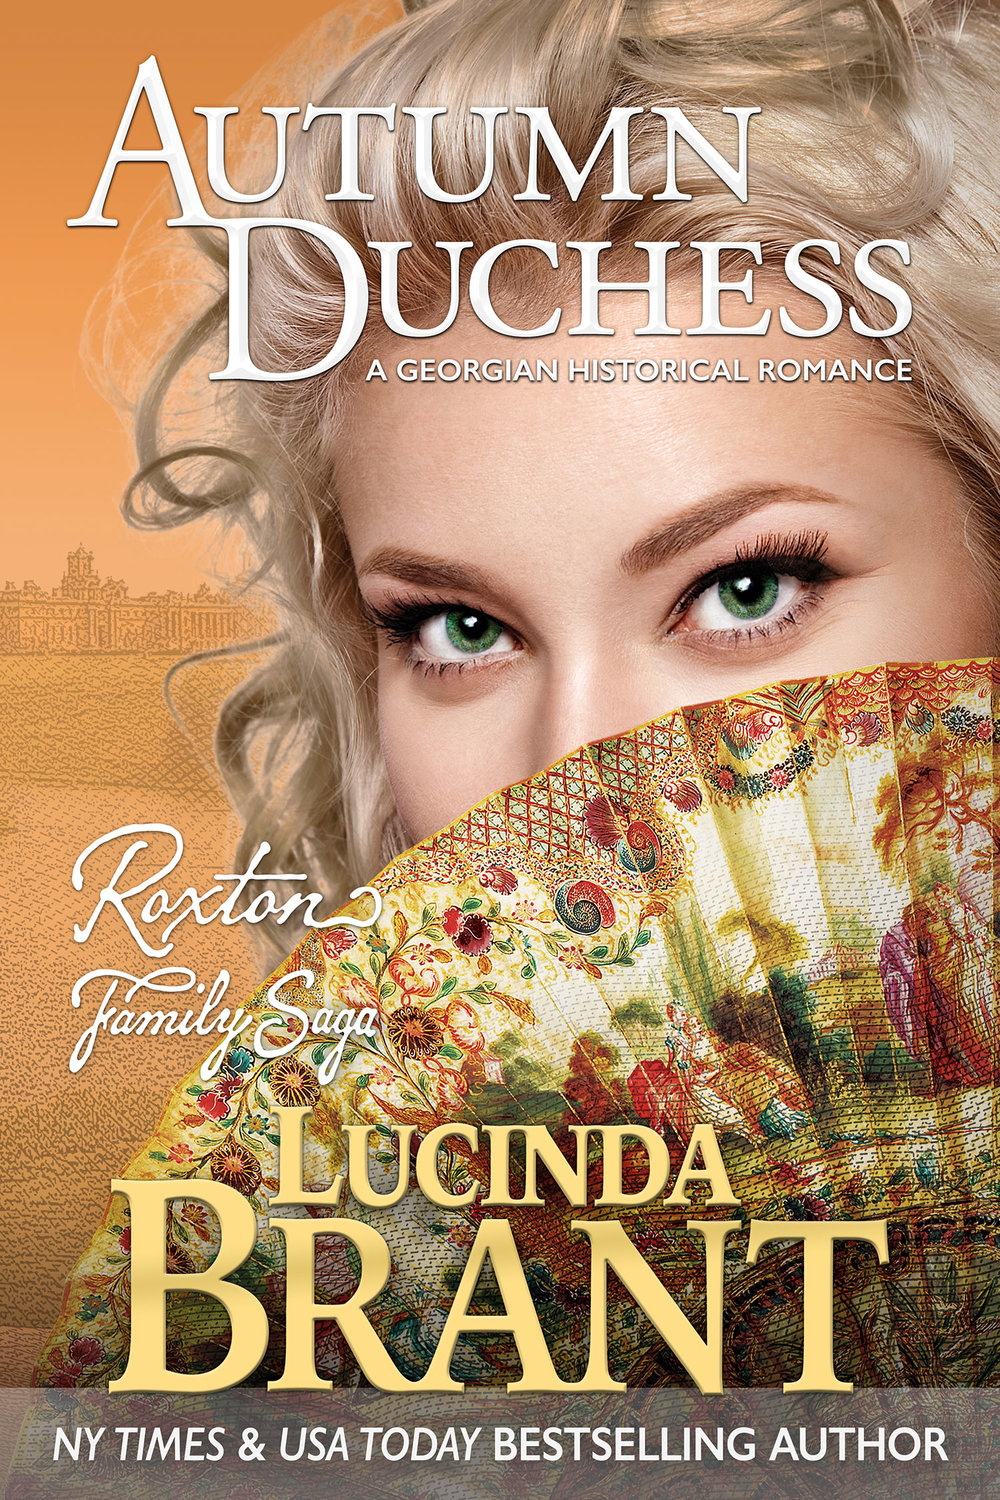 Autumn Duchess: A Georgian Historical Romance by Lucinda Brant